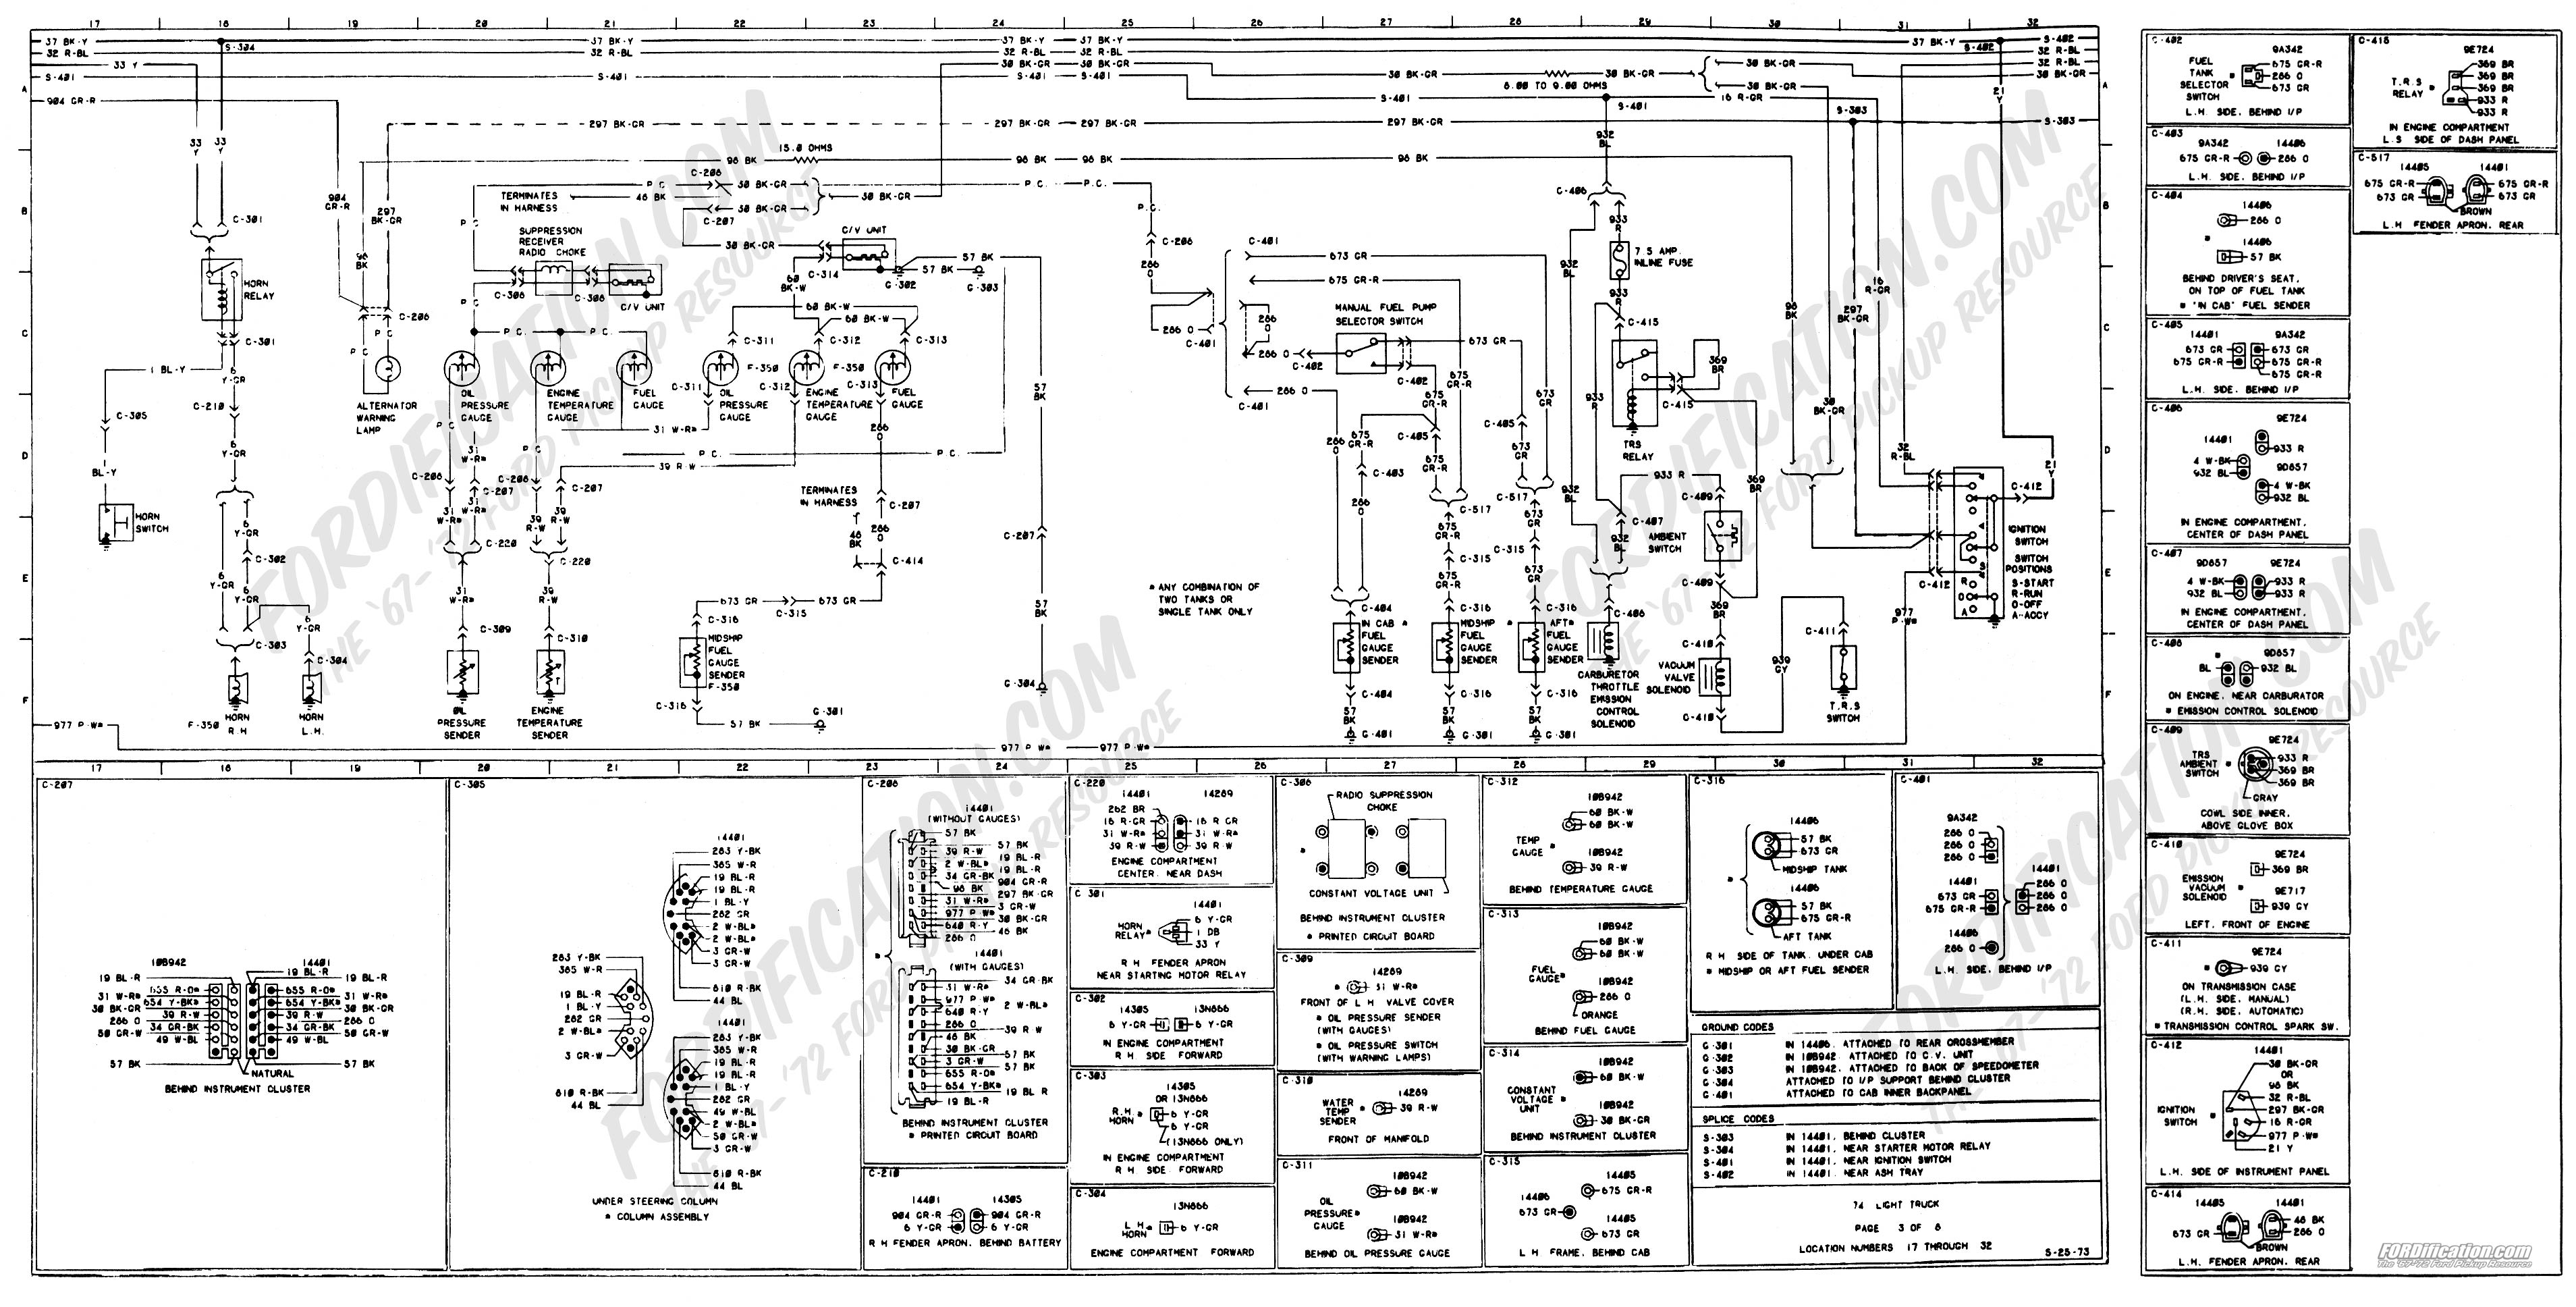 1973 1979 ford truck wiring diagrams schematics fordification net rh fordification net 2007 Ford F-250 Wiring Diagram Ford E 350 Wiring Diagrams